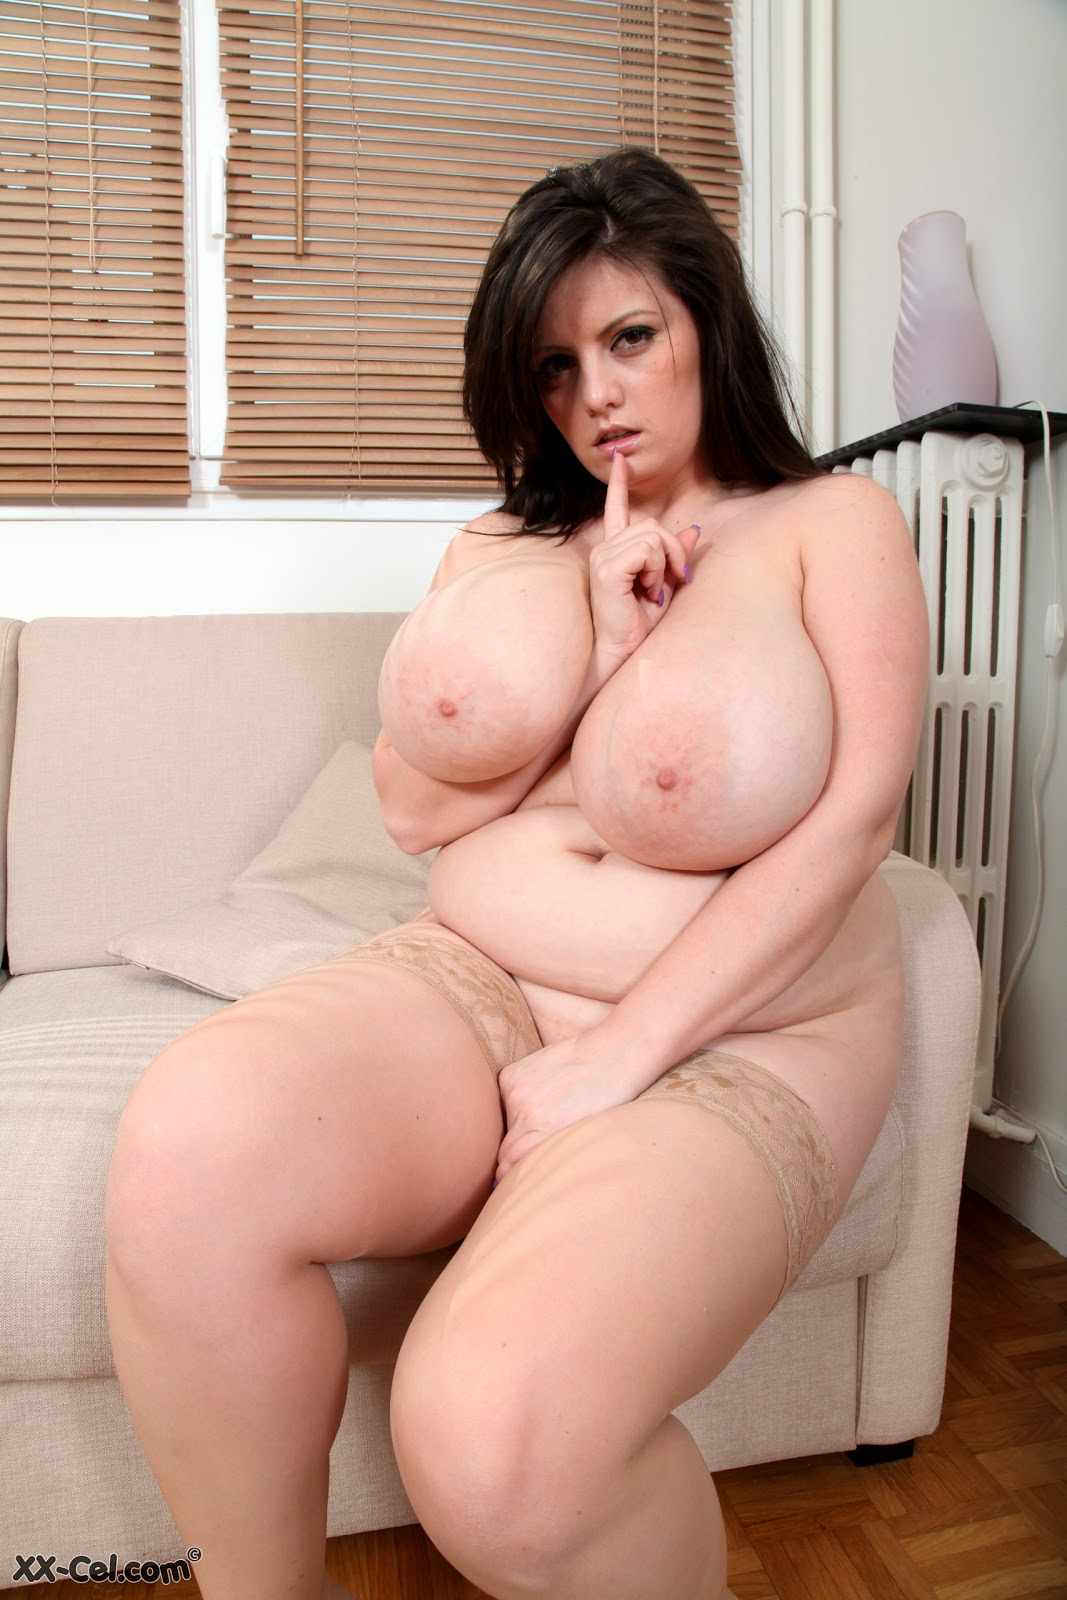 Busty terry nova enormous natural tits 9